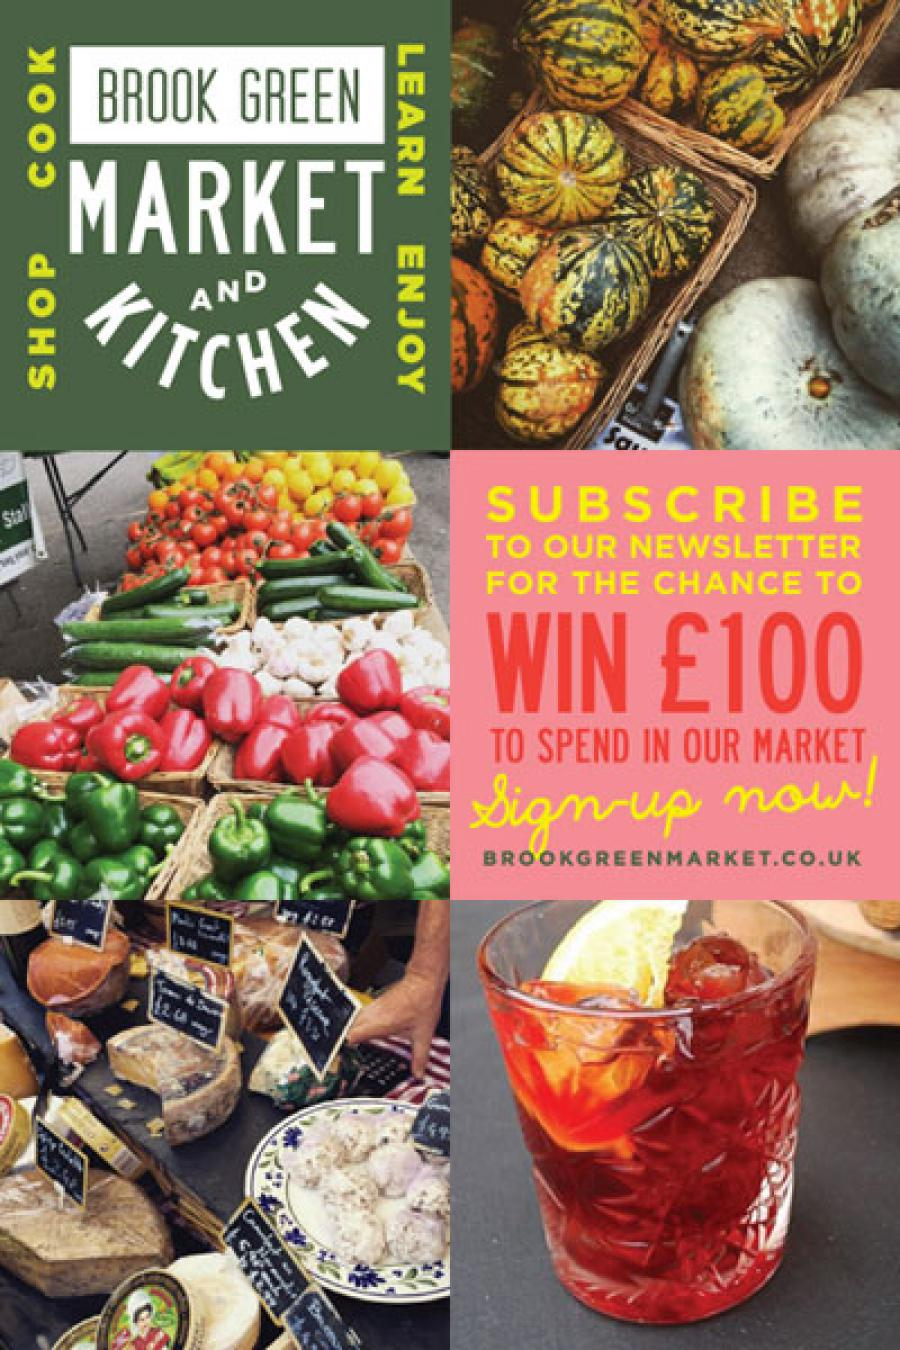 Brook Green Market has a £100 prize up for grabs